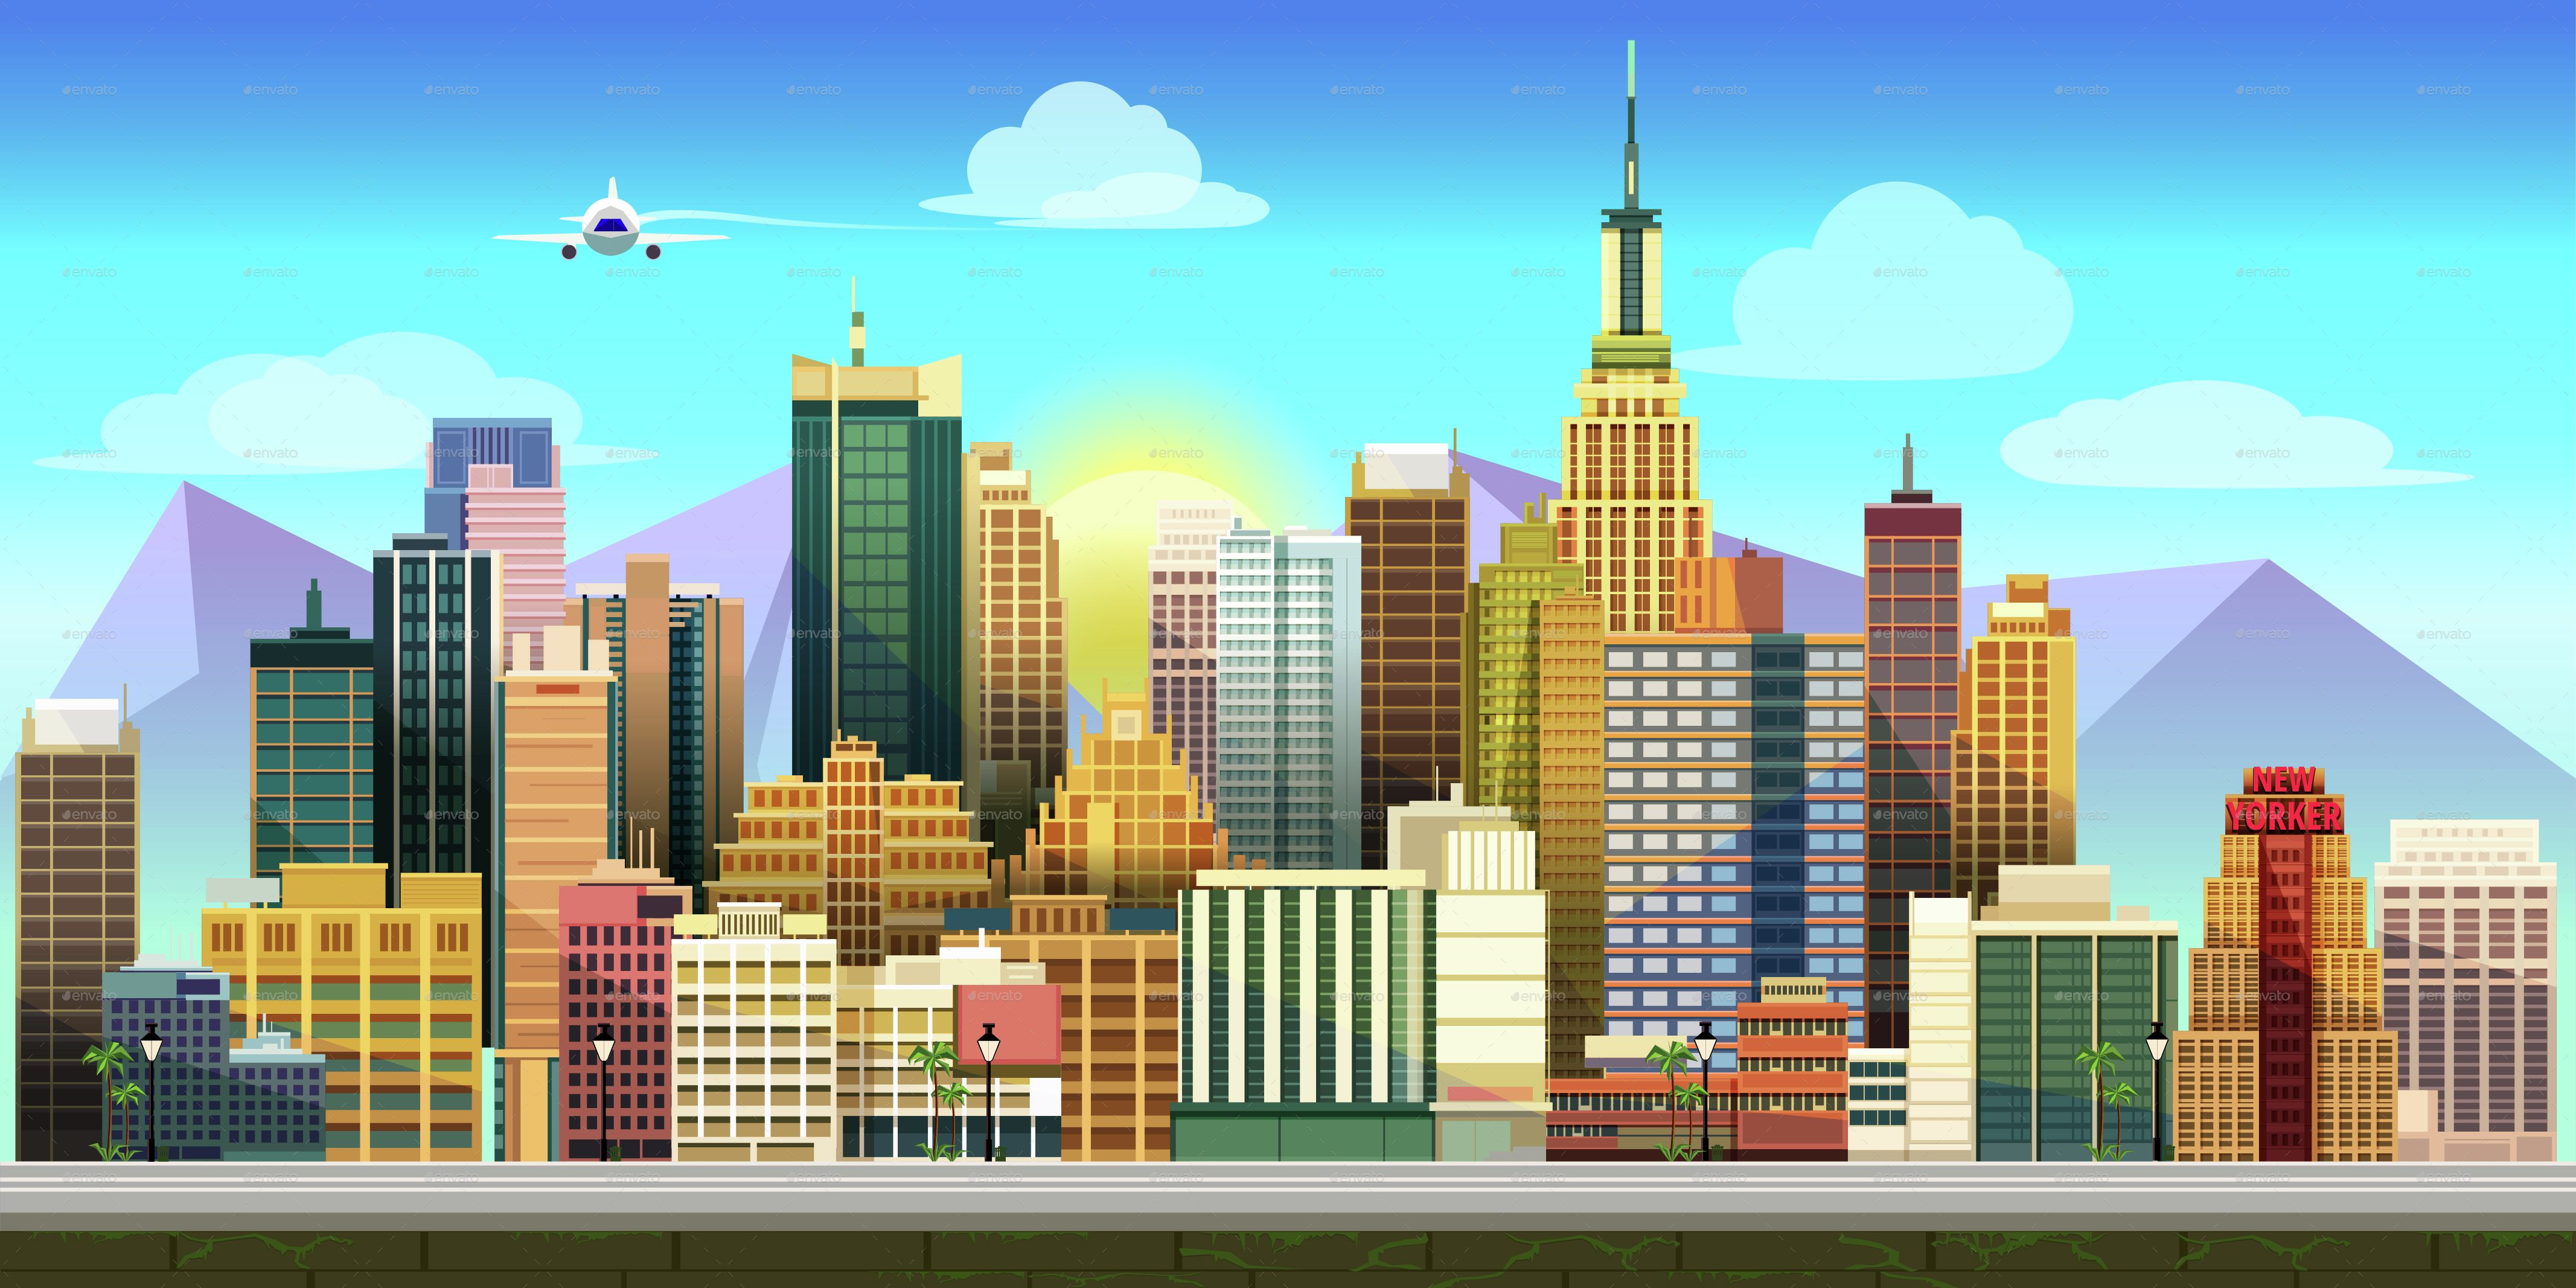 Related Image Game Background City Games City Cartoon